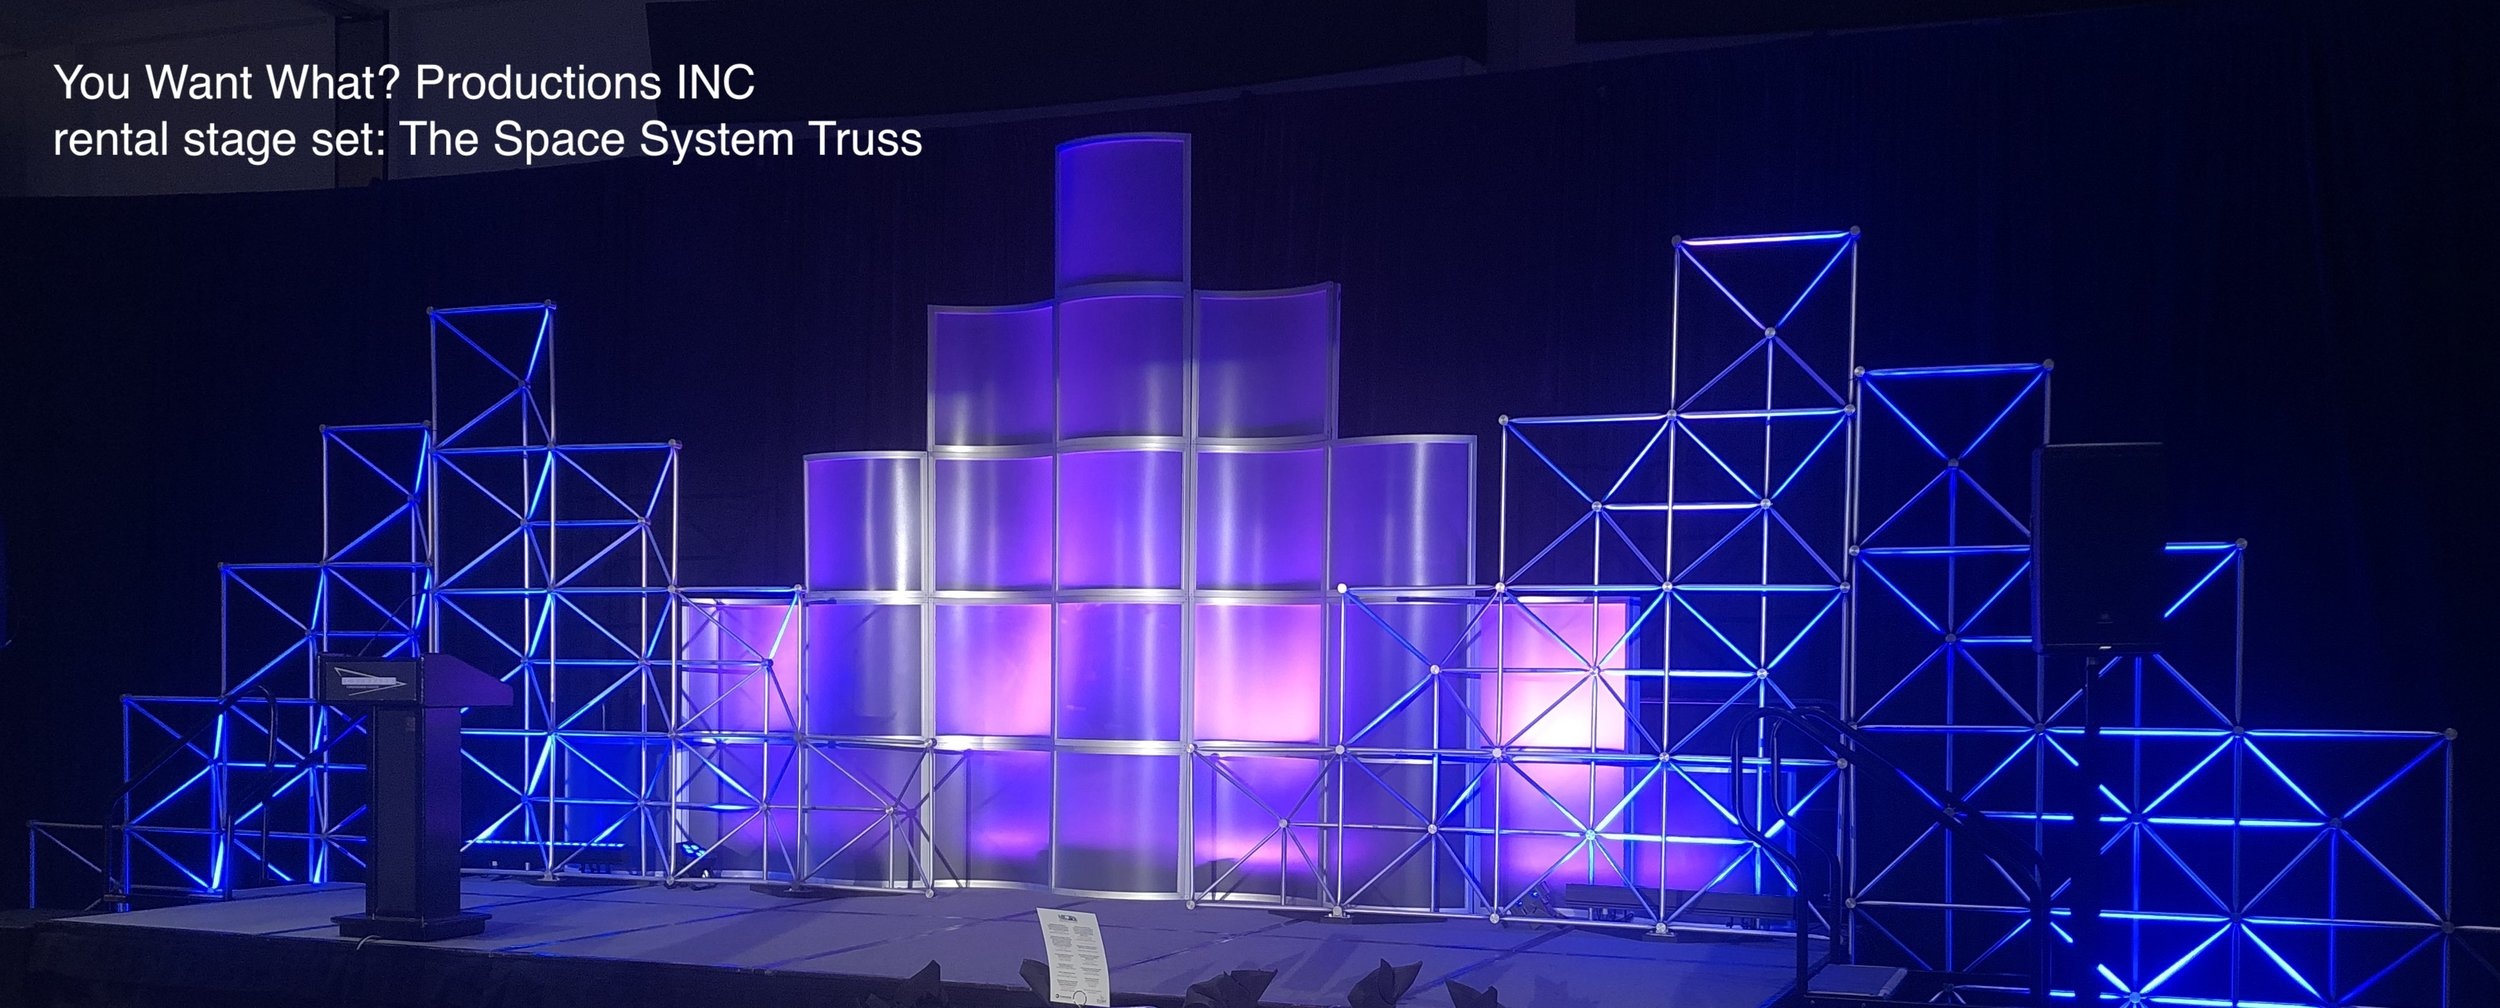 You Want What Productions INC rental set Space System Truss  - 10.jpg